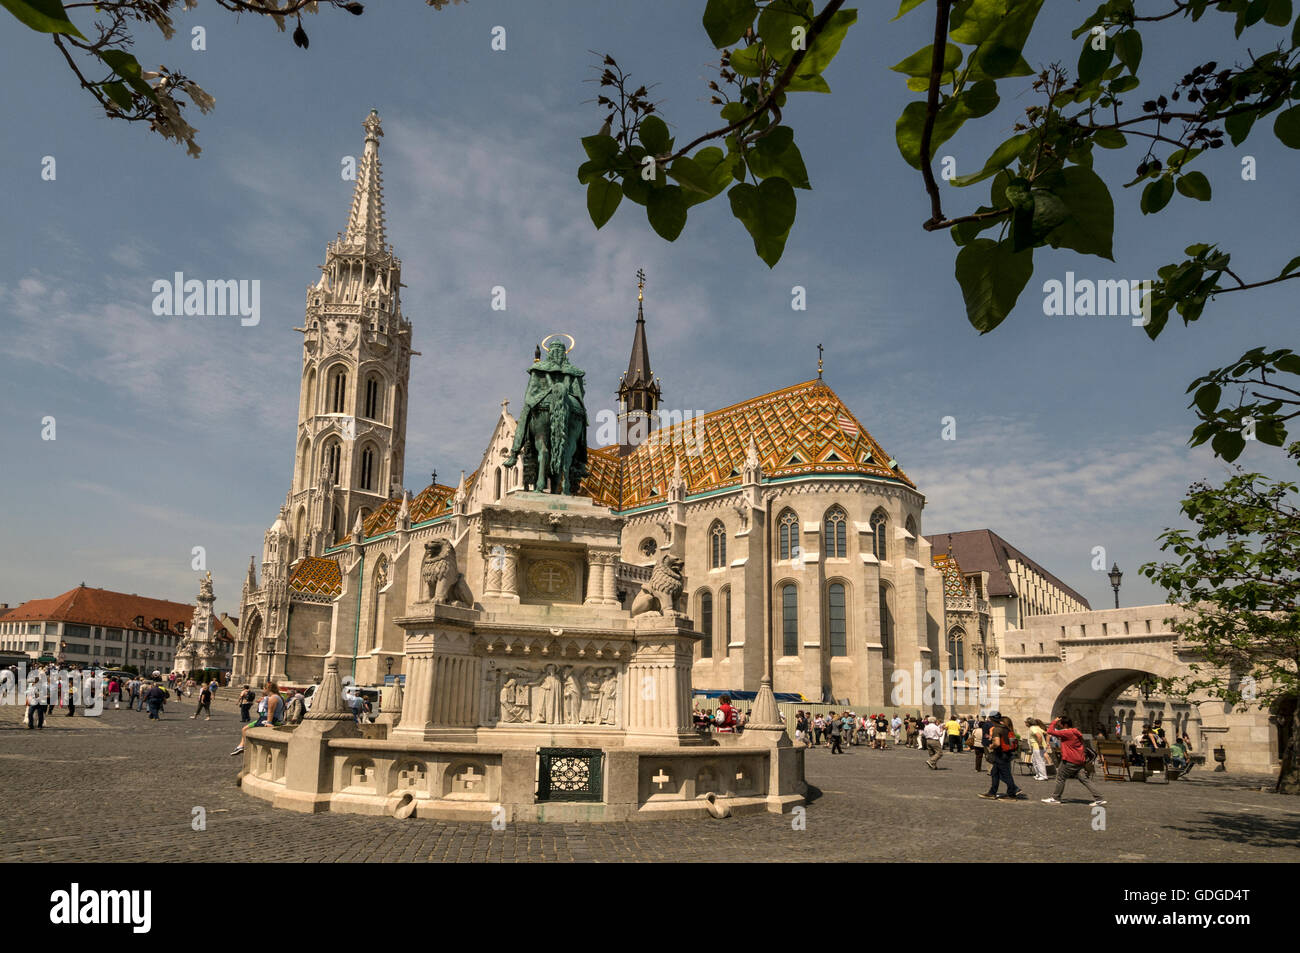 A statue of Saint Stephen, Grand Prince of the Hungarians and the first King of Hungary in the Fishermen's Bastion - Stock Image